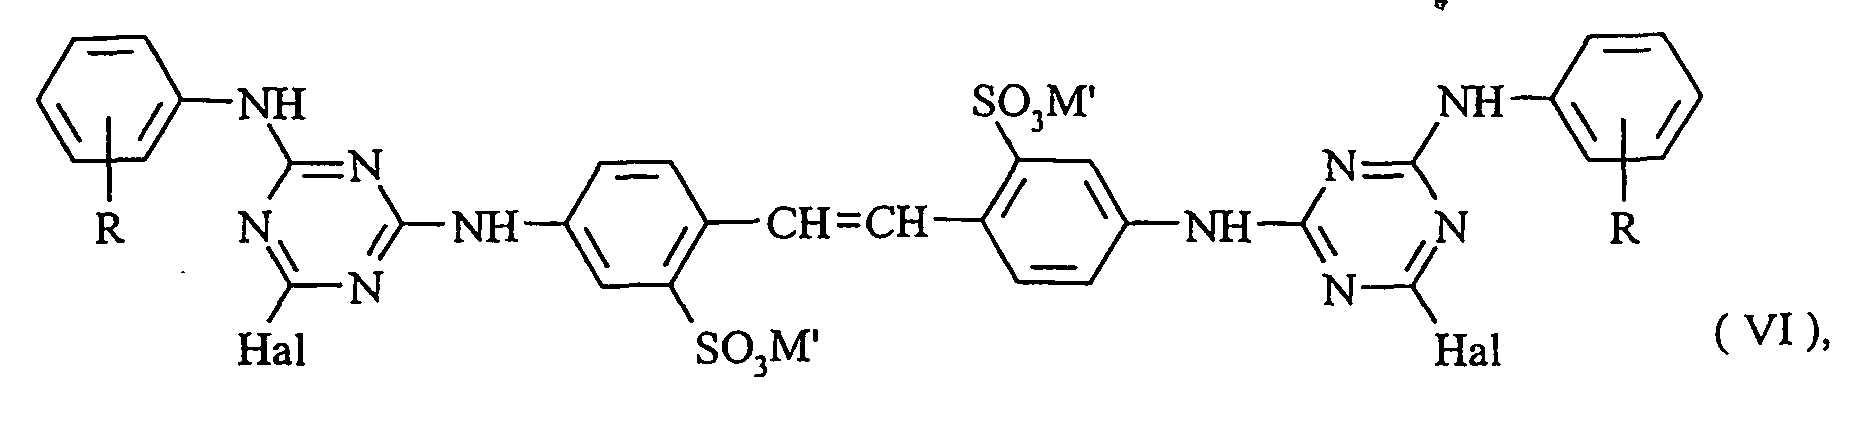 hight resolution of in which hal signifies halogen preferably chlorine which is then reacted with the aliphatic amine of formula iv or v respectively